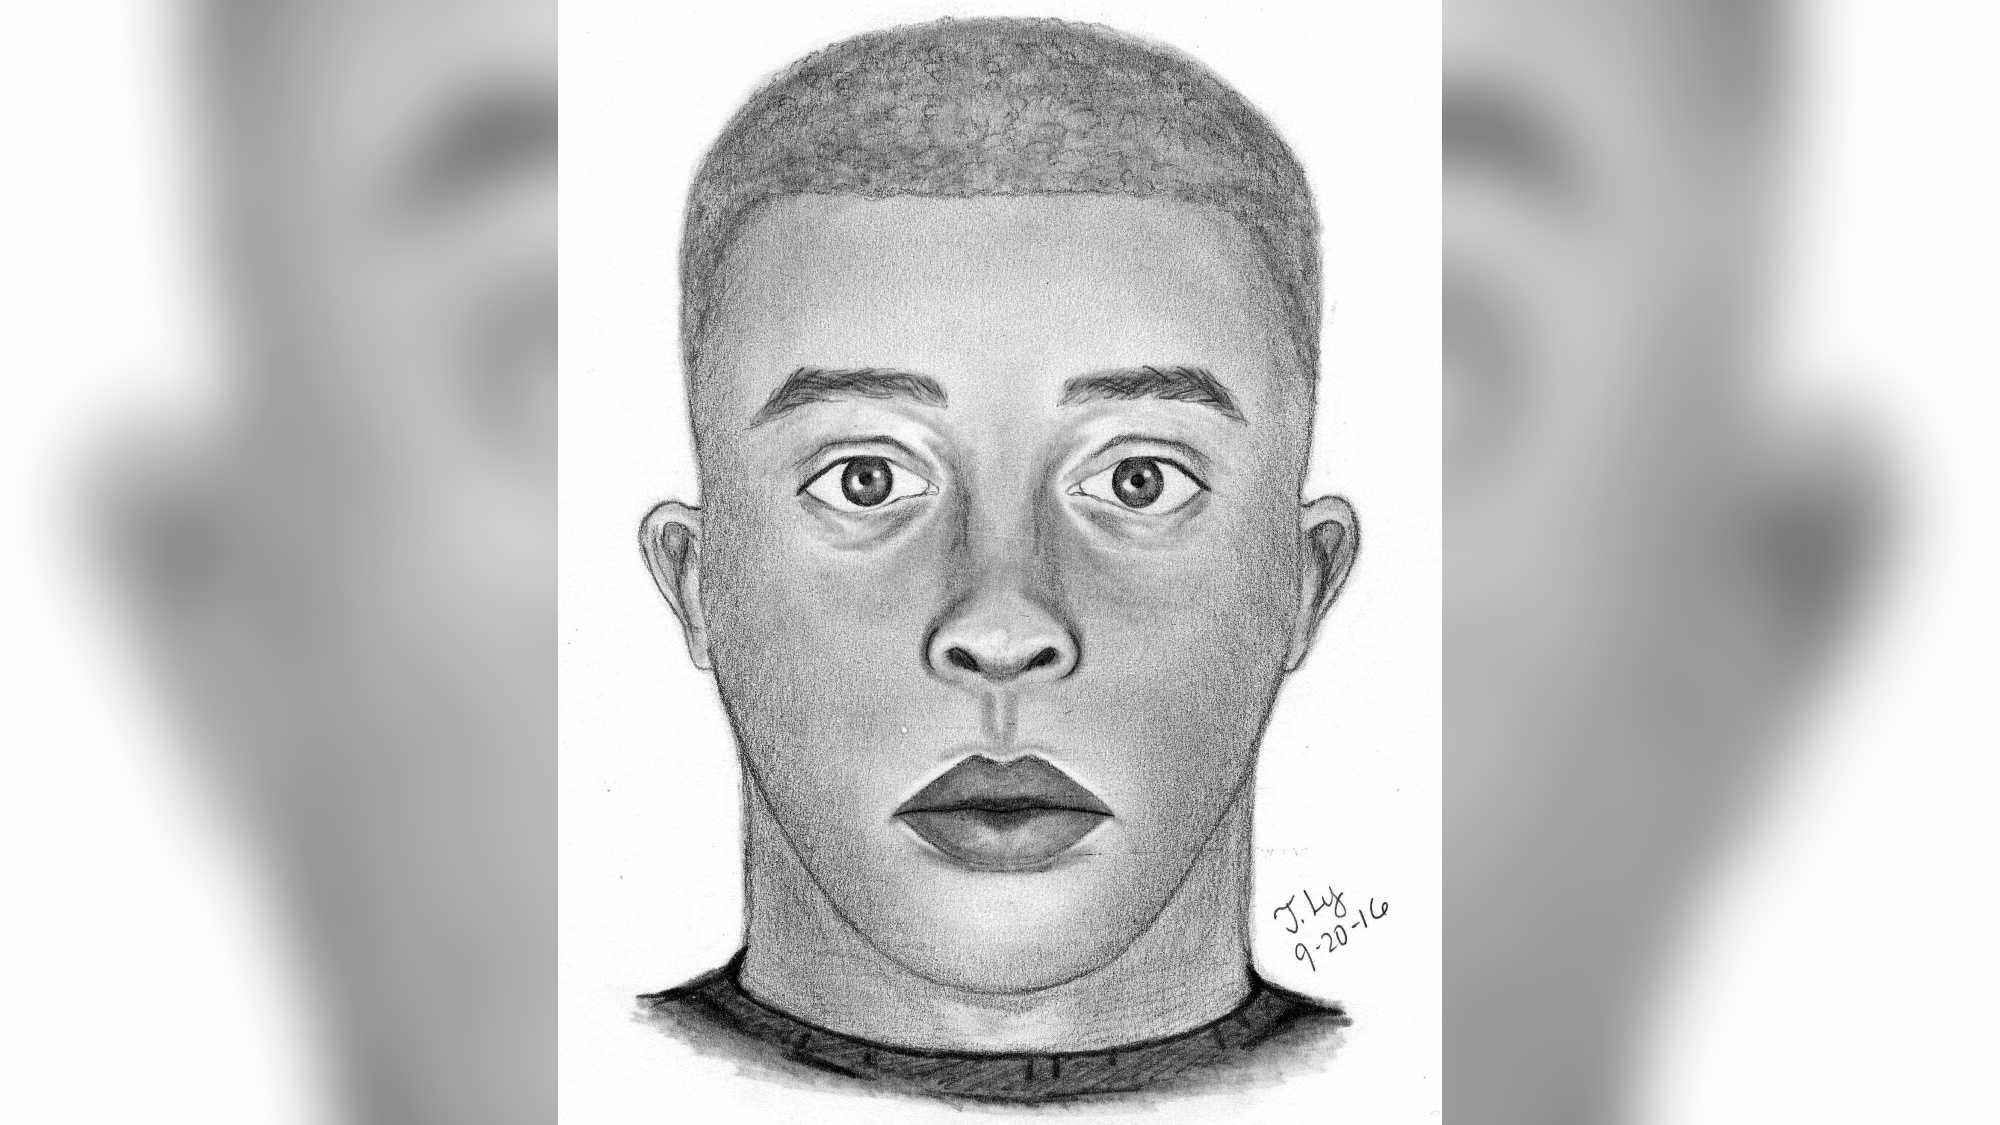 The Sacramento County Sheriff's Department released this sketch of man who attacked and sexually assaulted a 15-year-old girl.